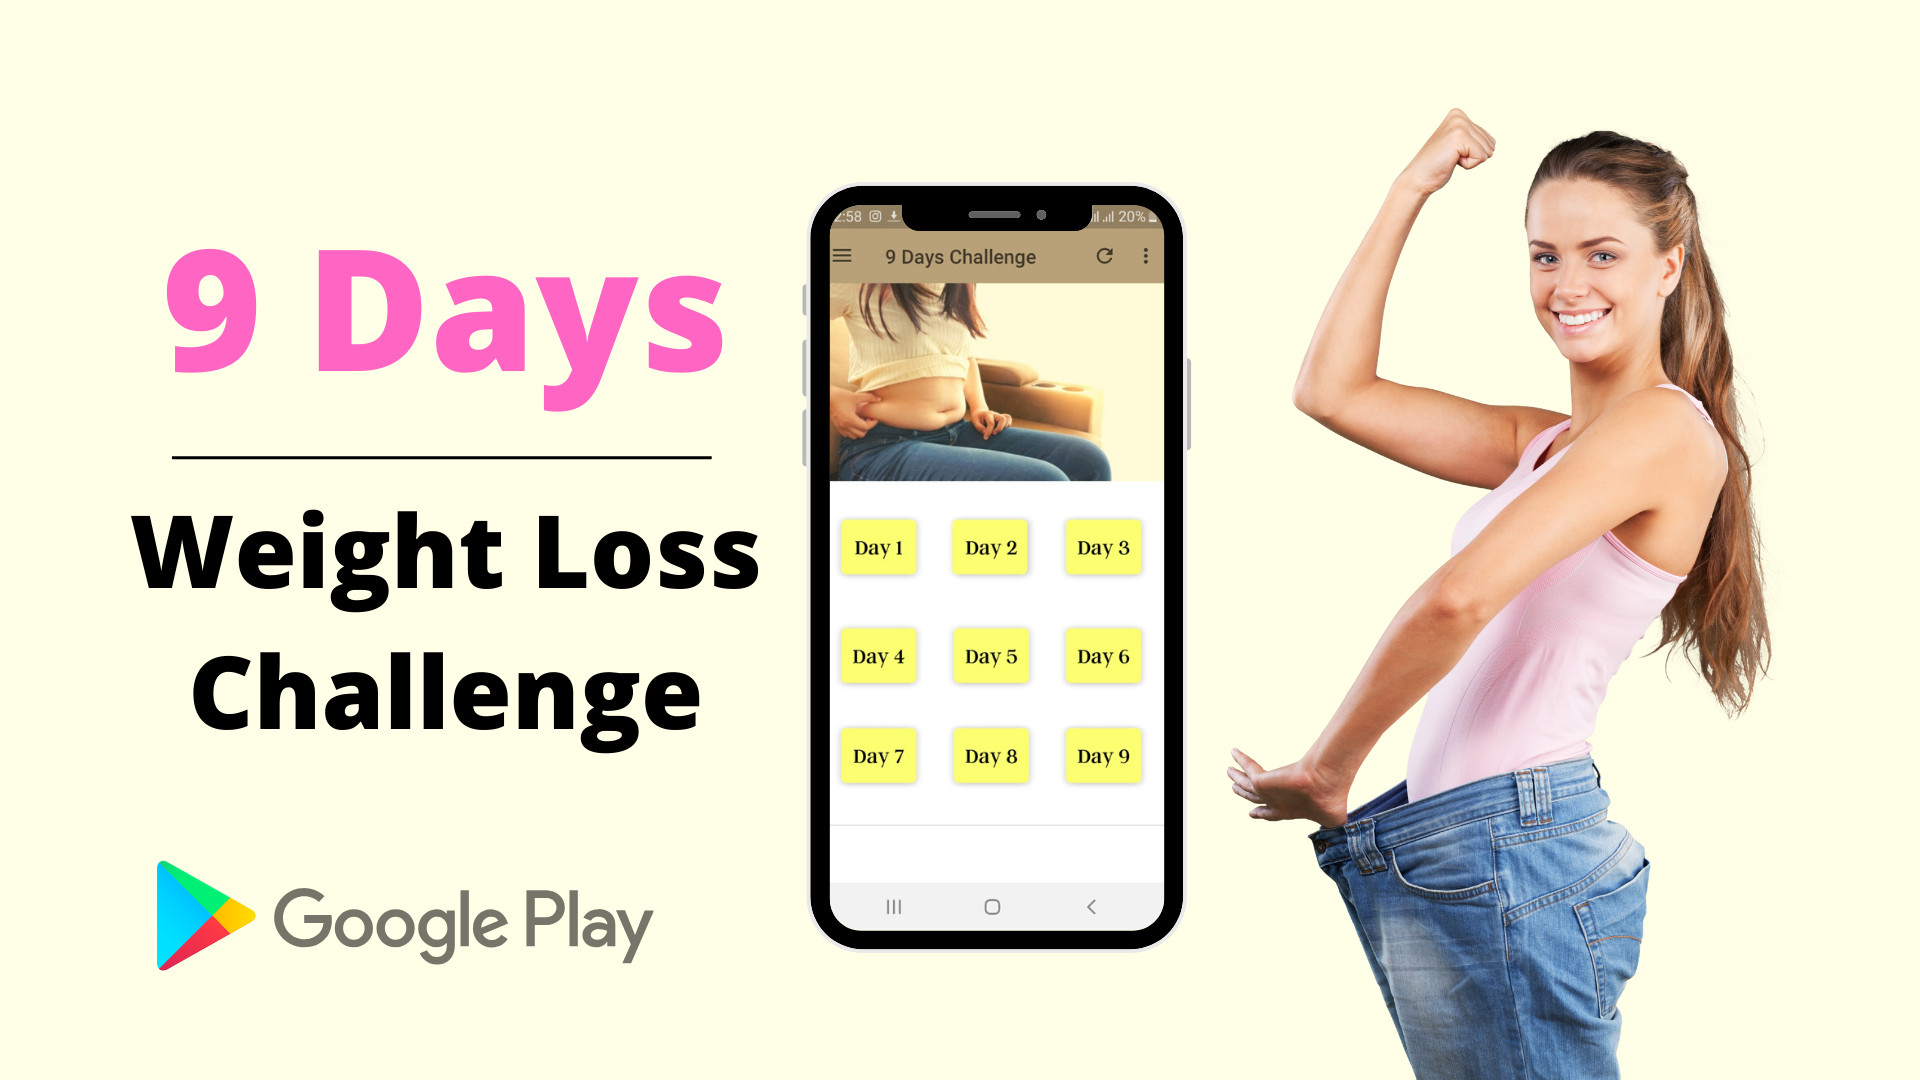 Weight Loss Challenge App: Get 9 Days Workout and Diet Plan